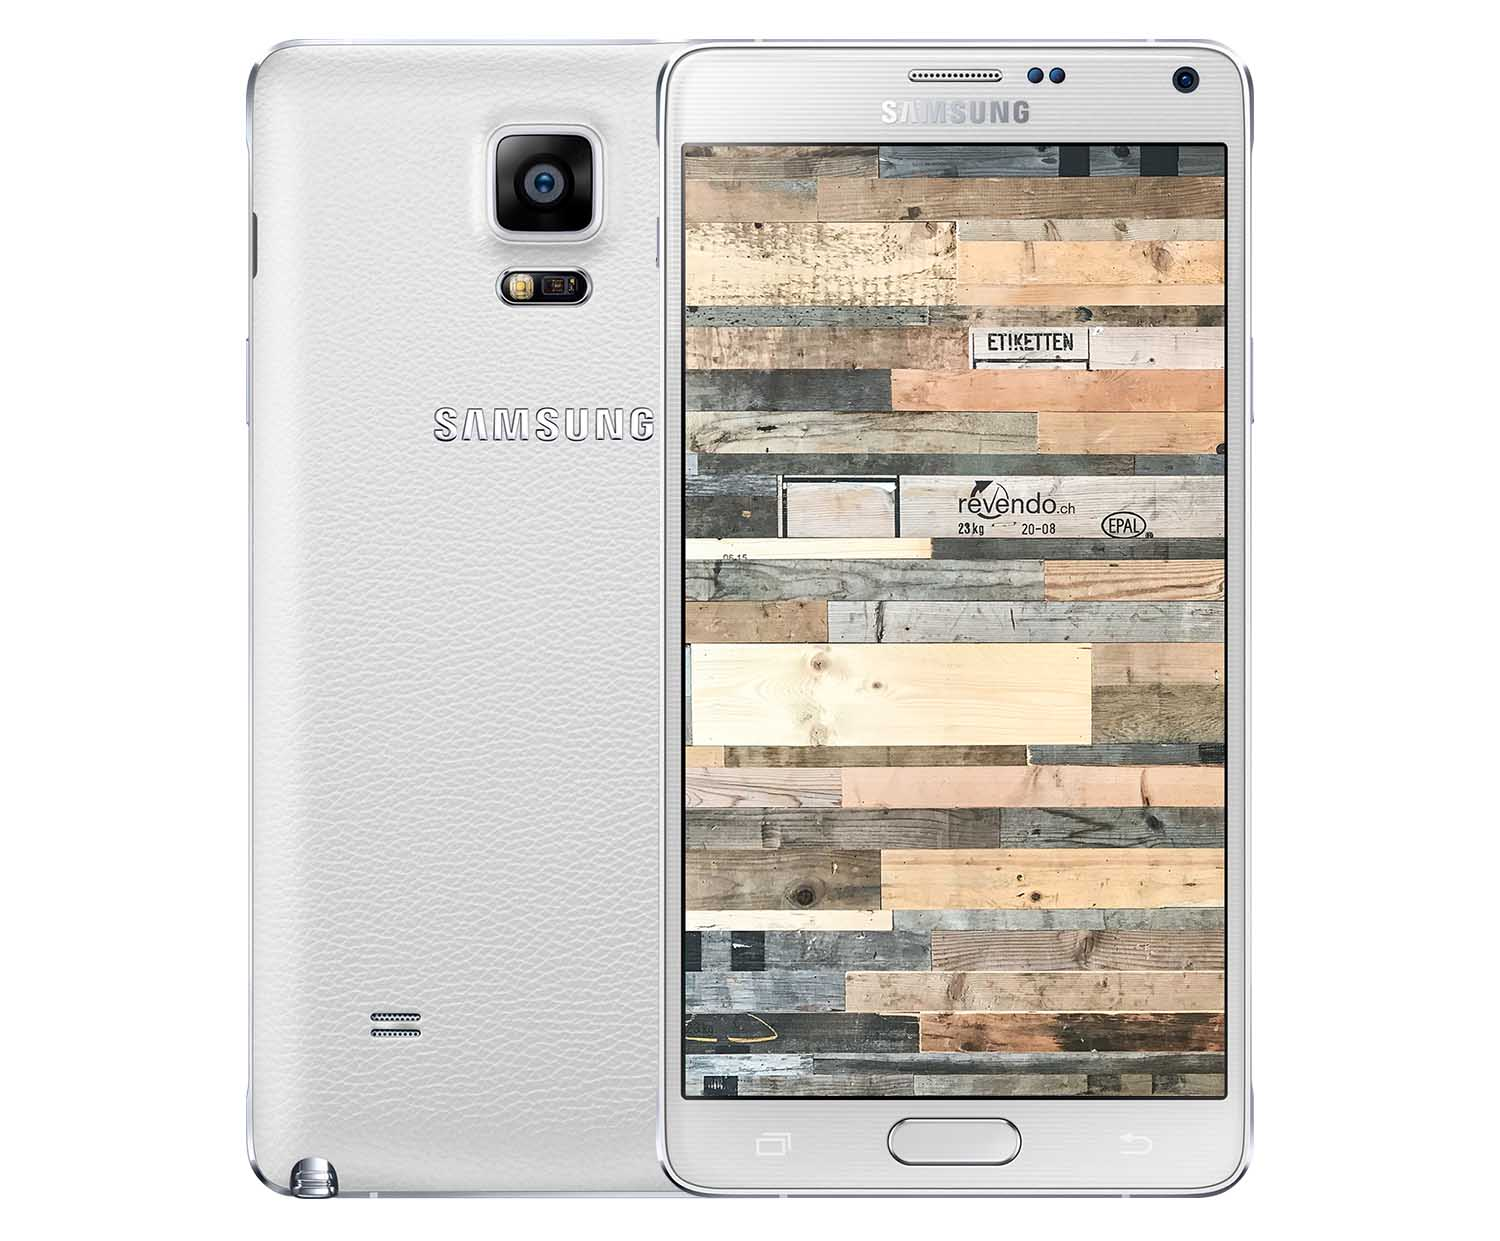 samsung galaxy note4 32 gb weiss. Black Bedroom Furniture Sets. Home Design Ideas